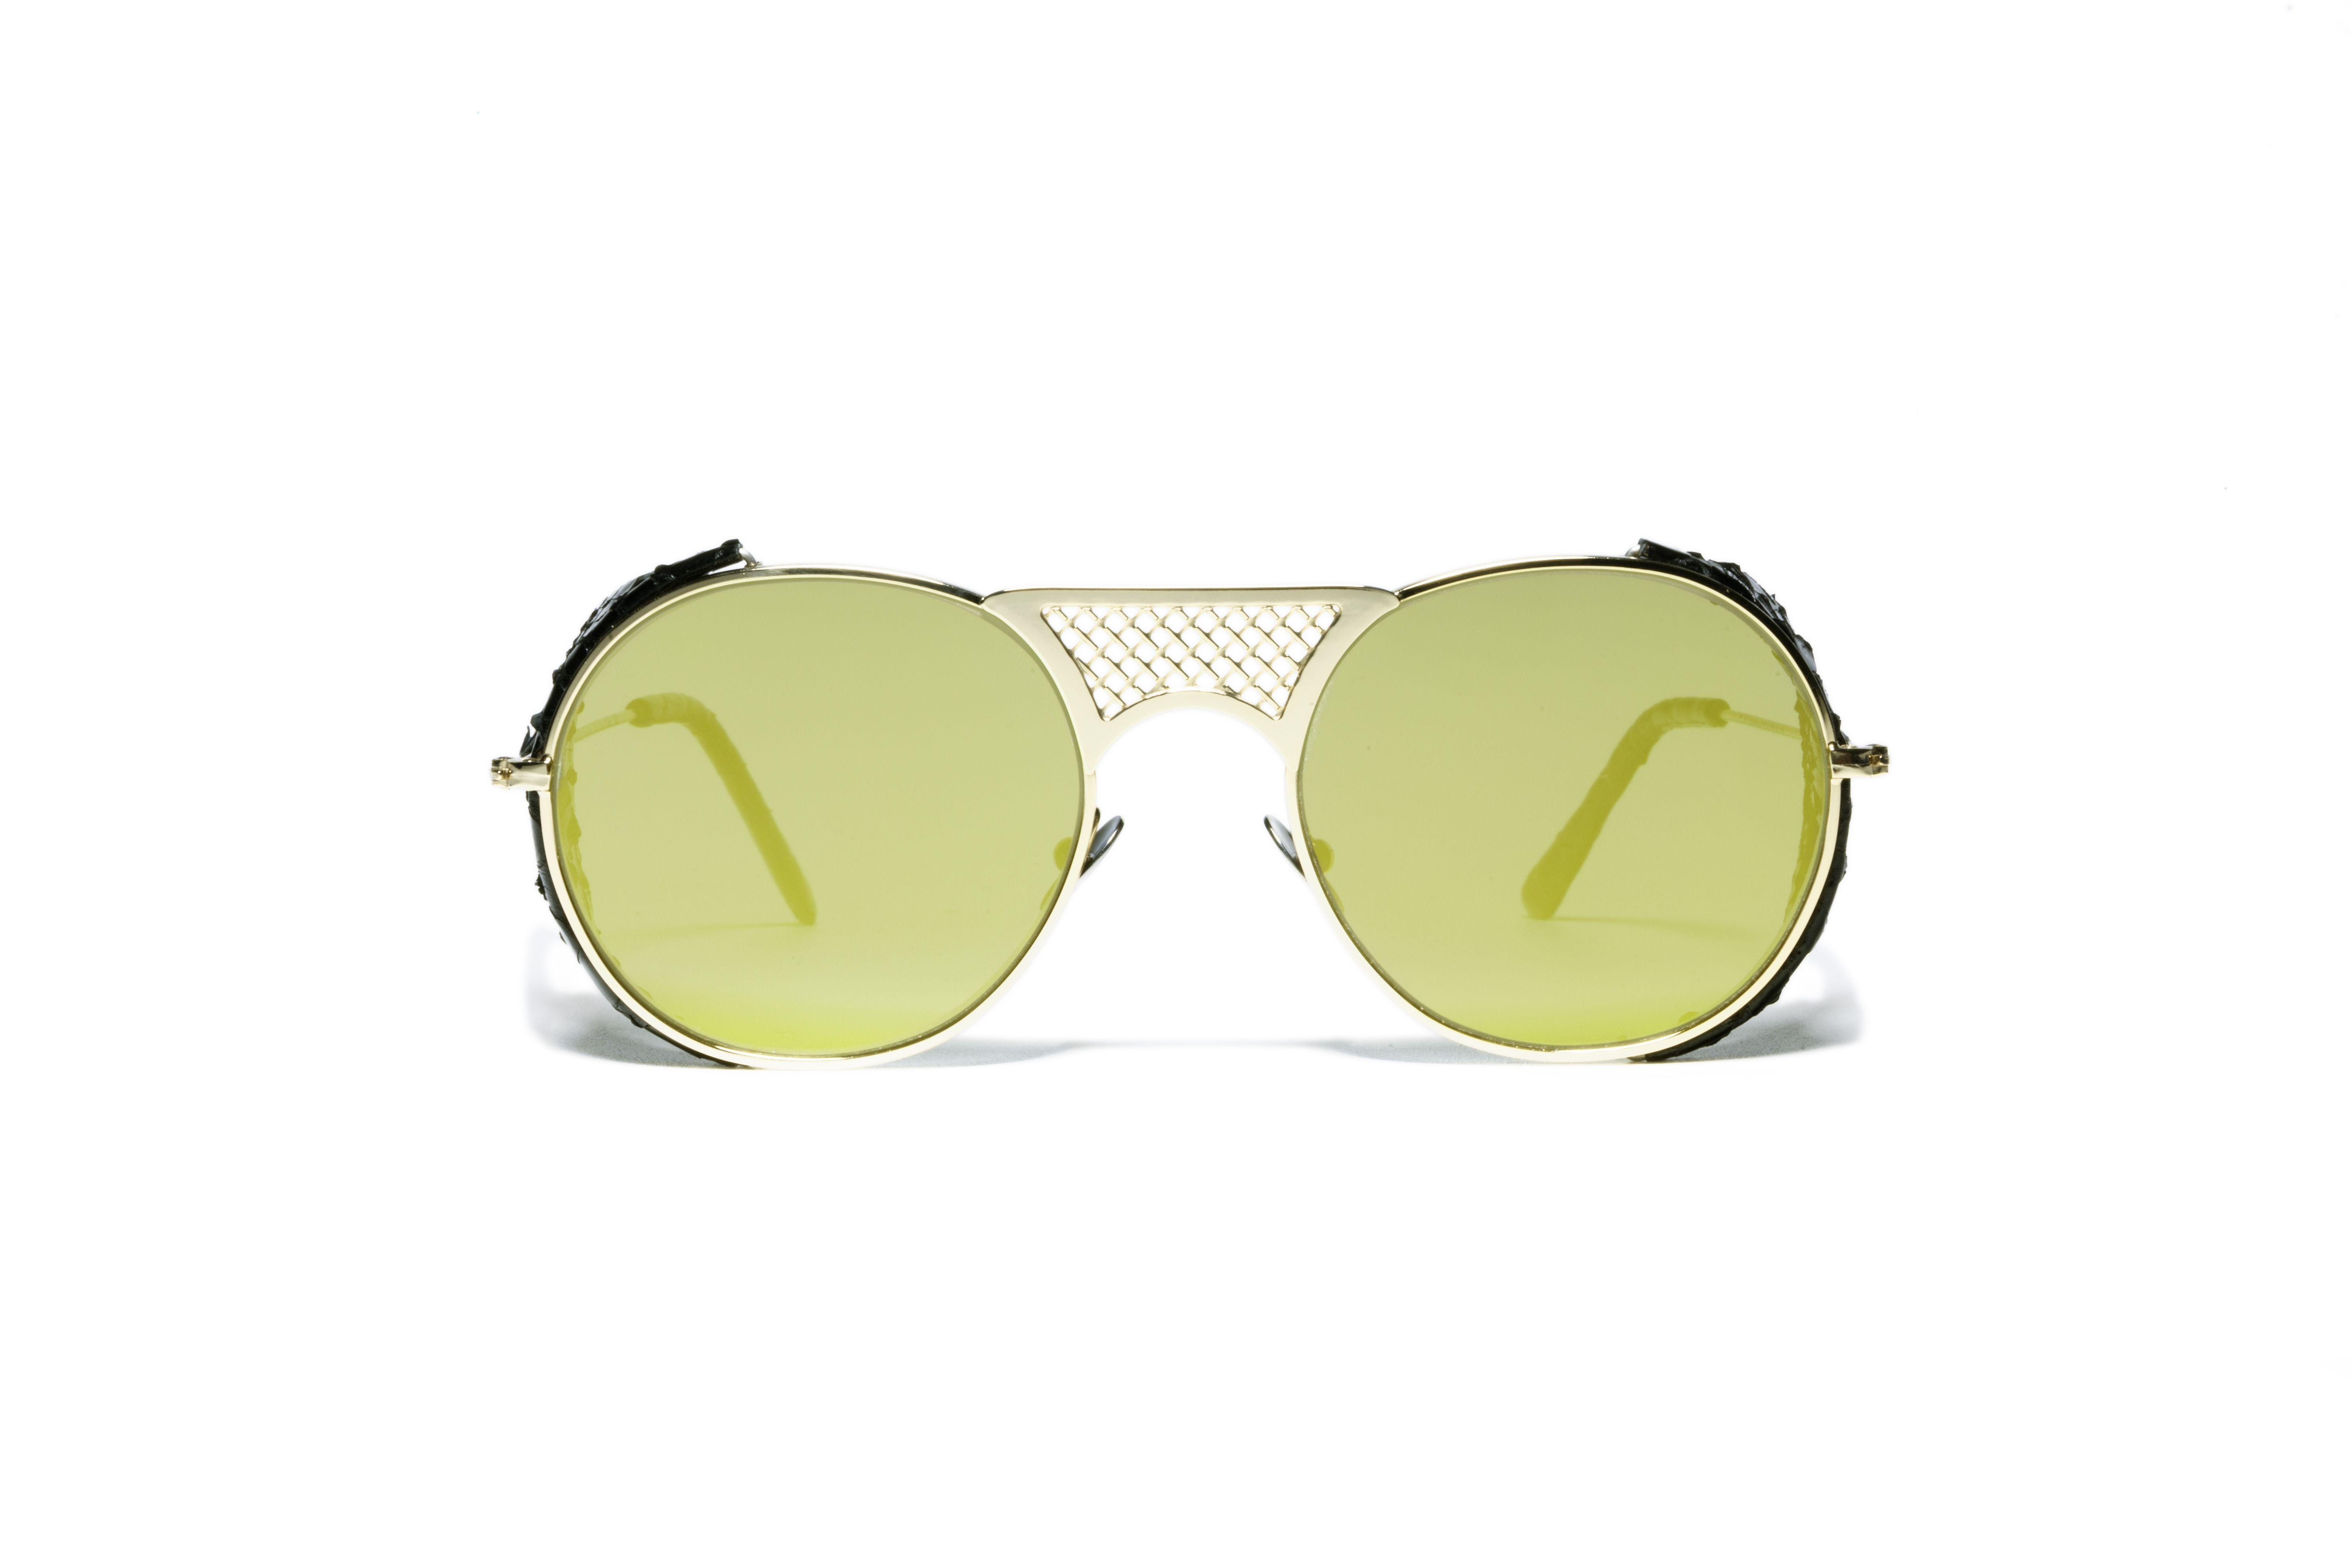 L.G.R sunglasses Mod. LAWRENCE FLAP SNAKE gold | Lawrence | Pinterest